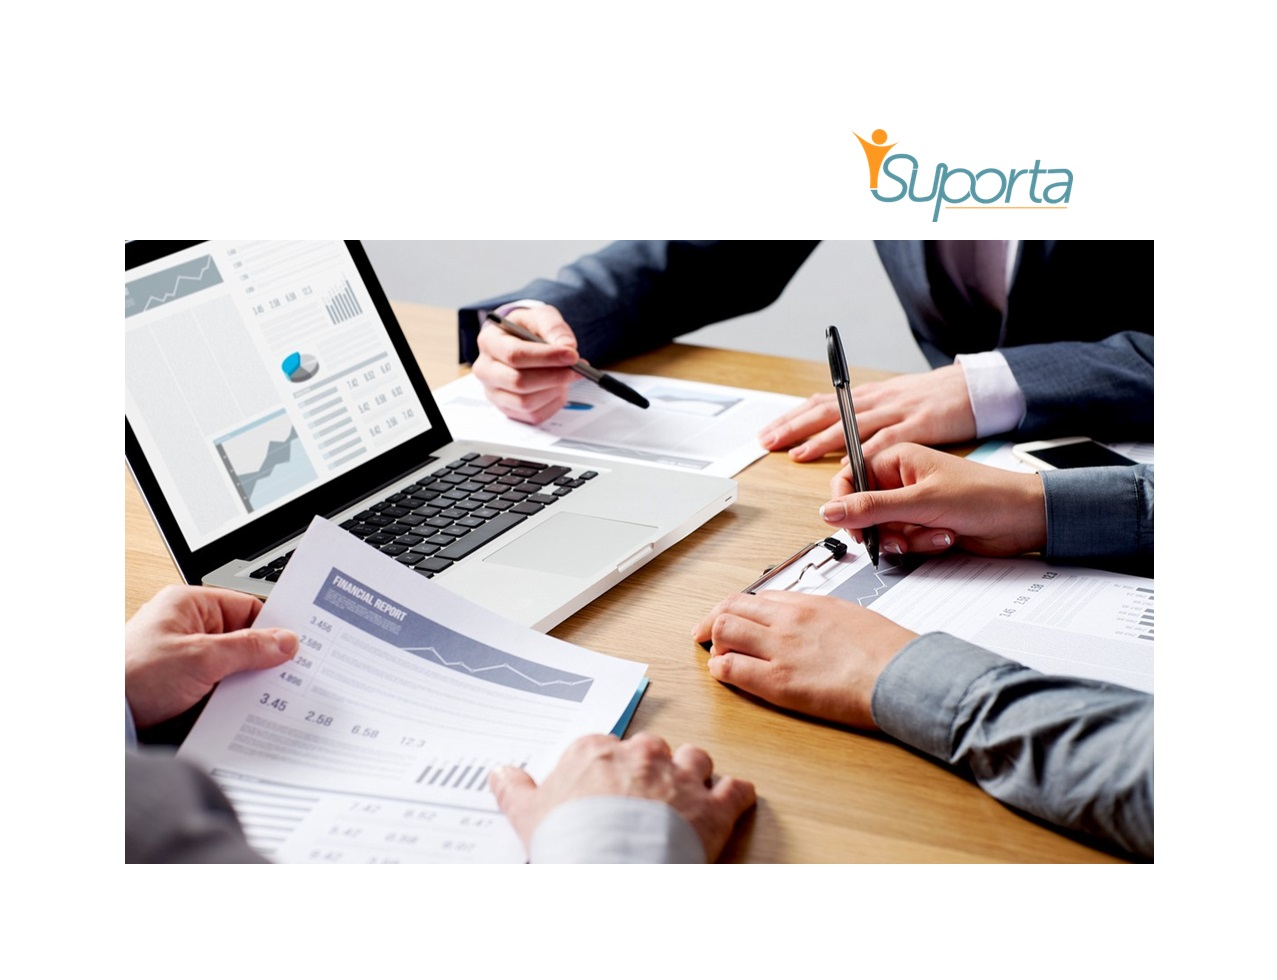 outsourced bookkeeping - hands on a computer or you can outsource